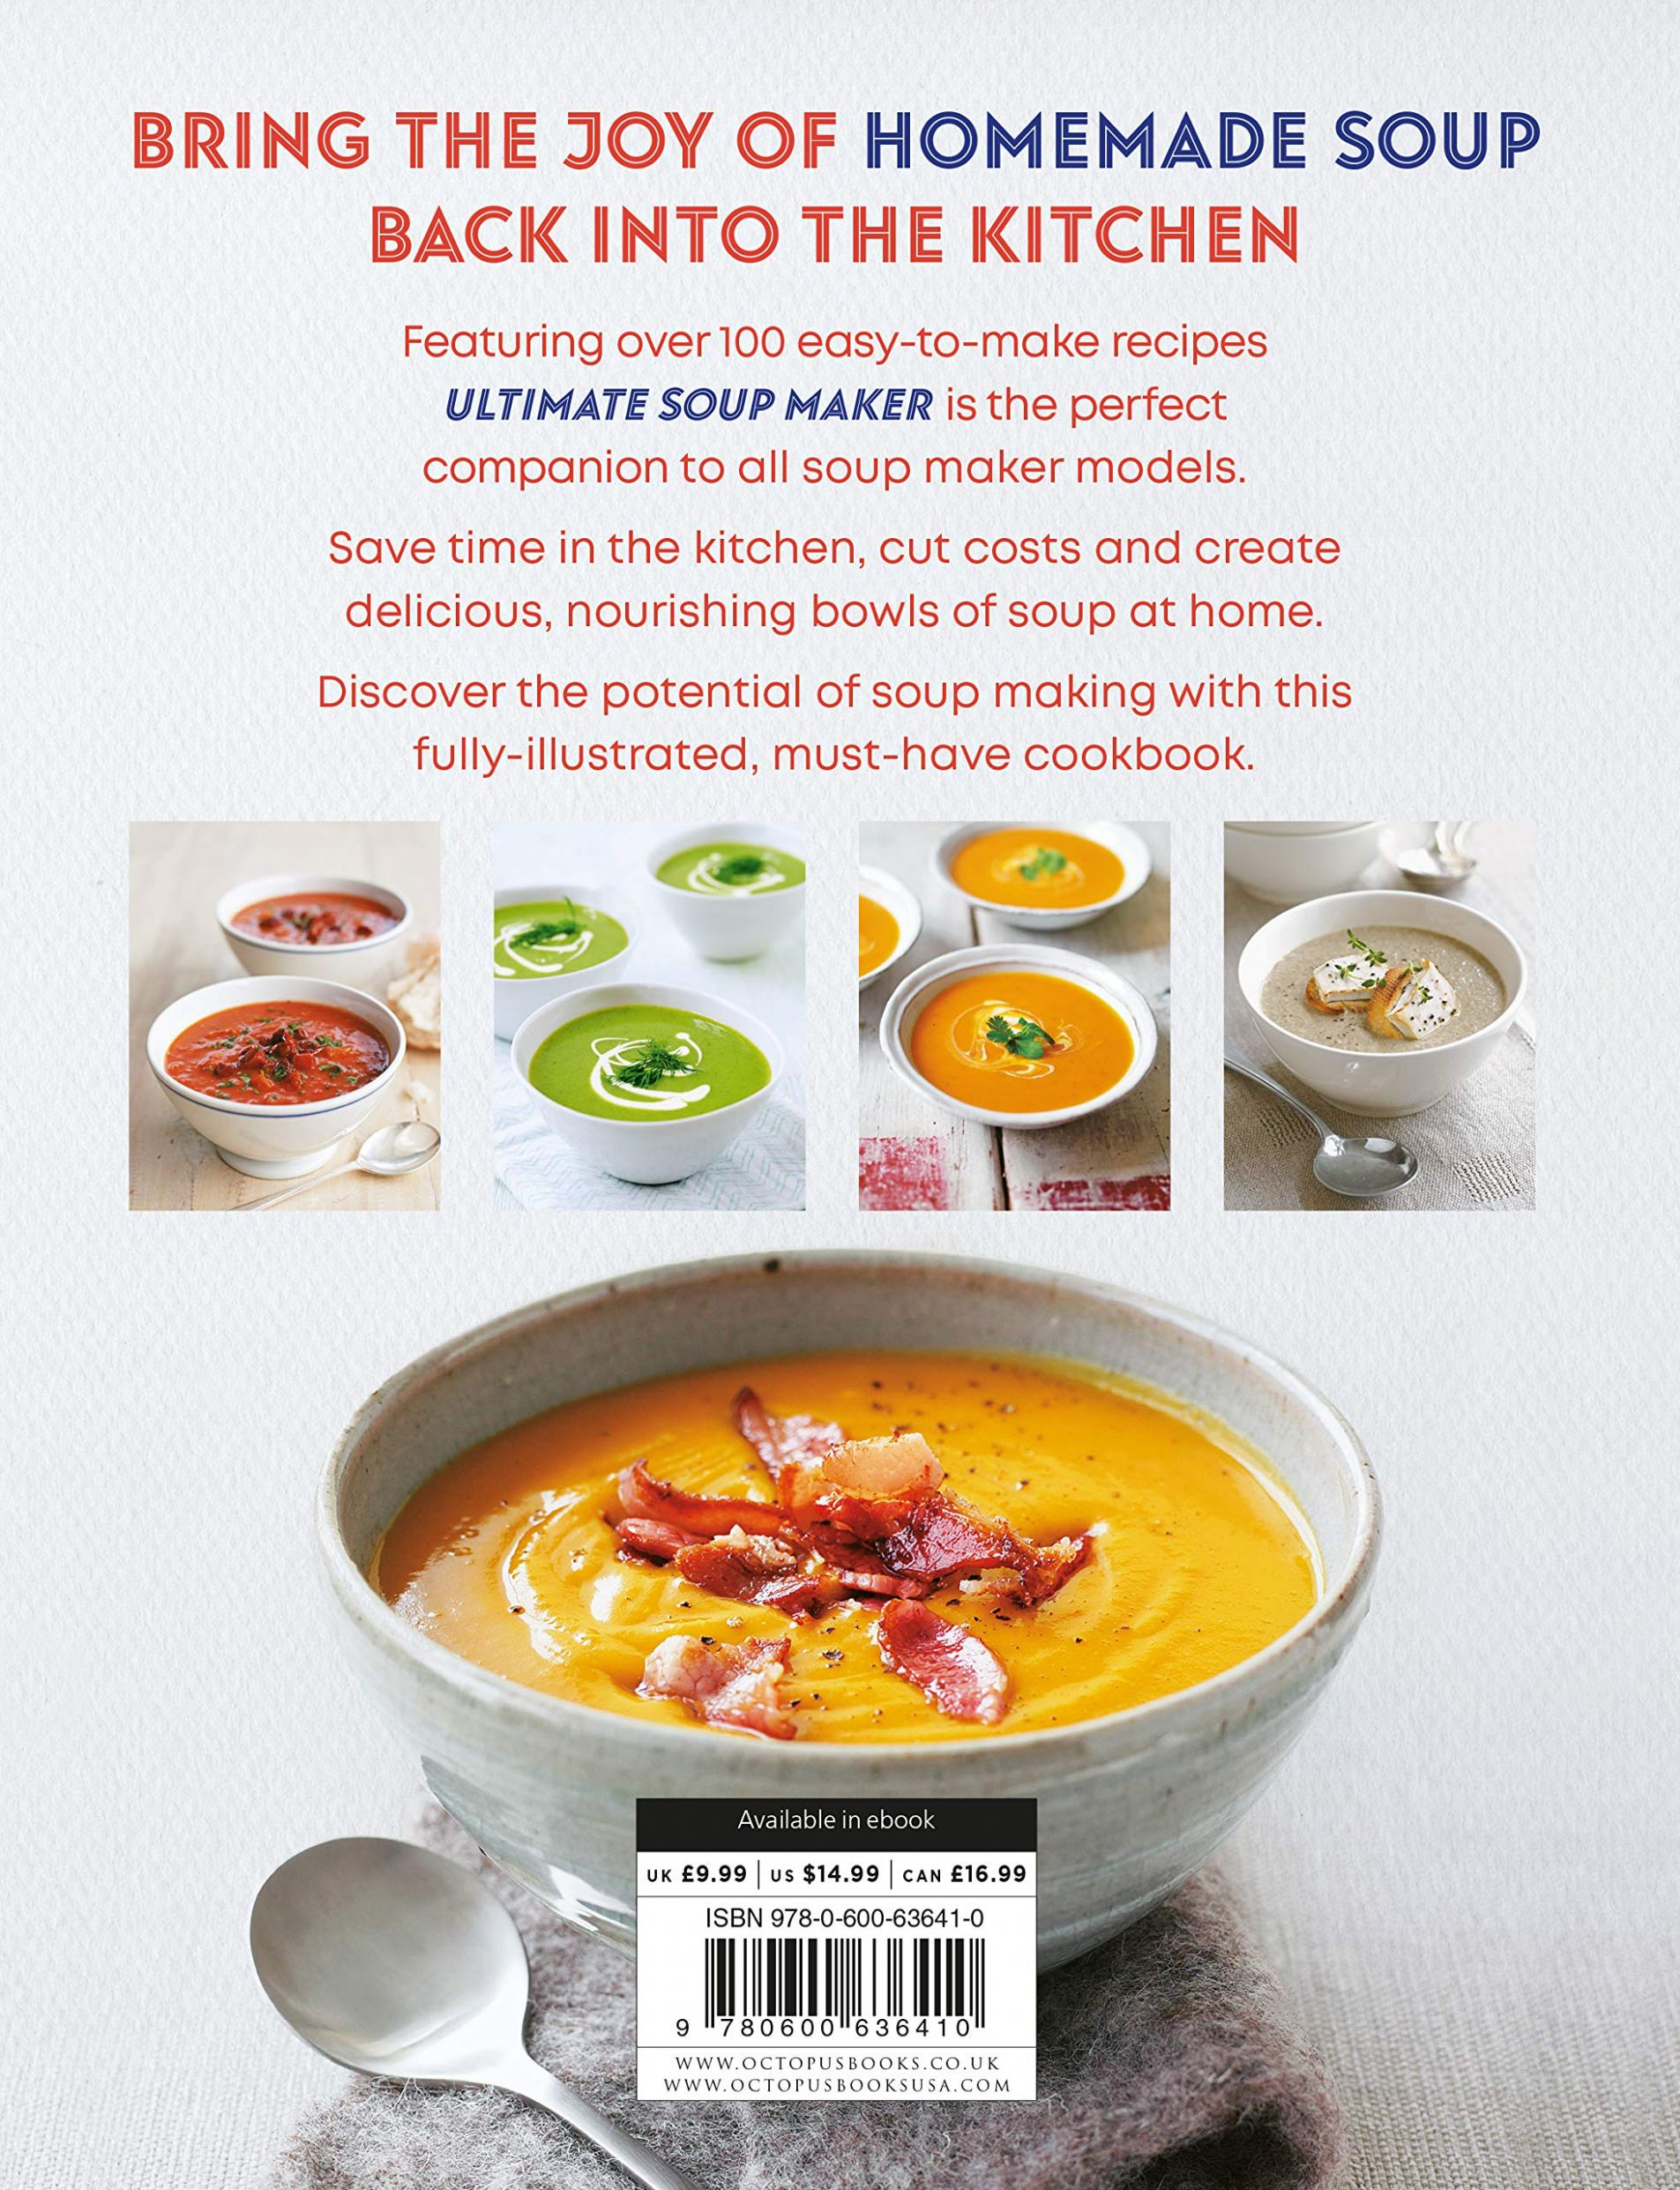 Ultimate Soup Maker: More than 9 simple, nutritious recipes ..